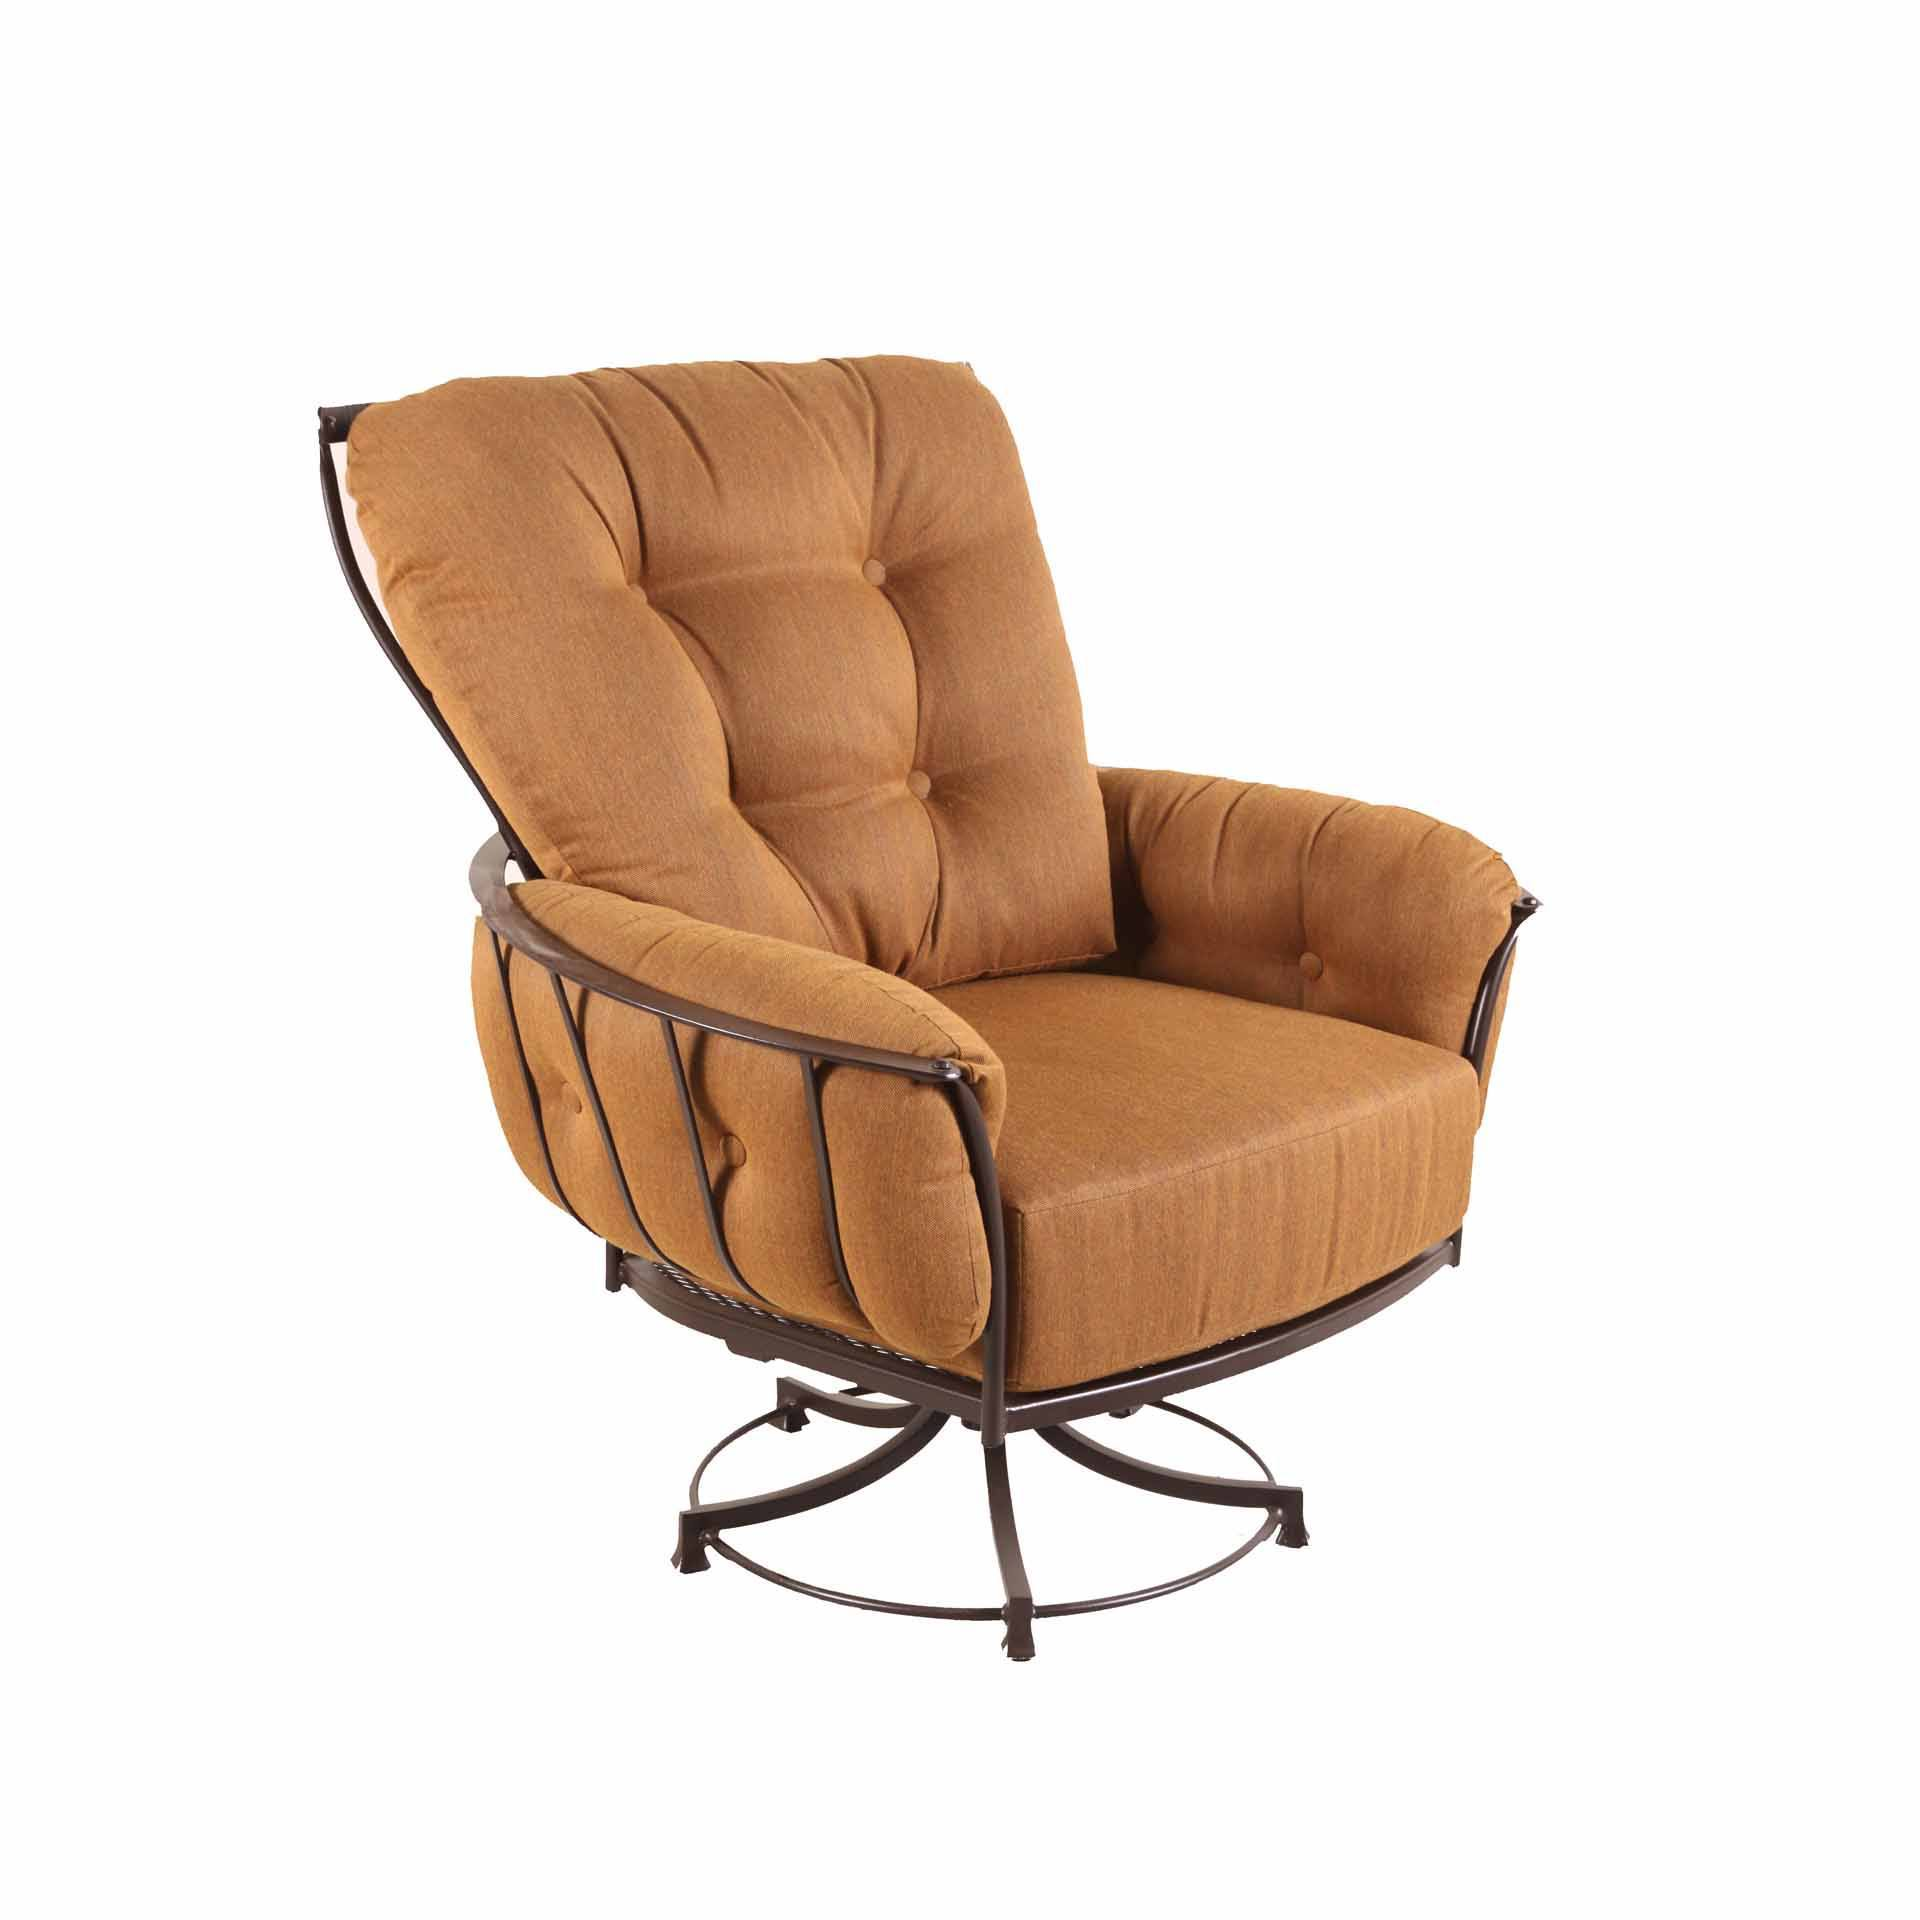 Ow Lee Monterra Swivel Rocker Lounge Chair Leisure Living